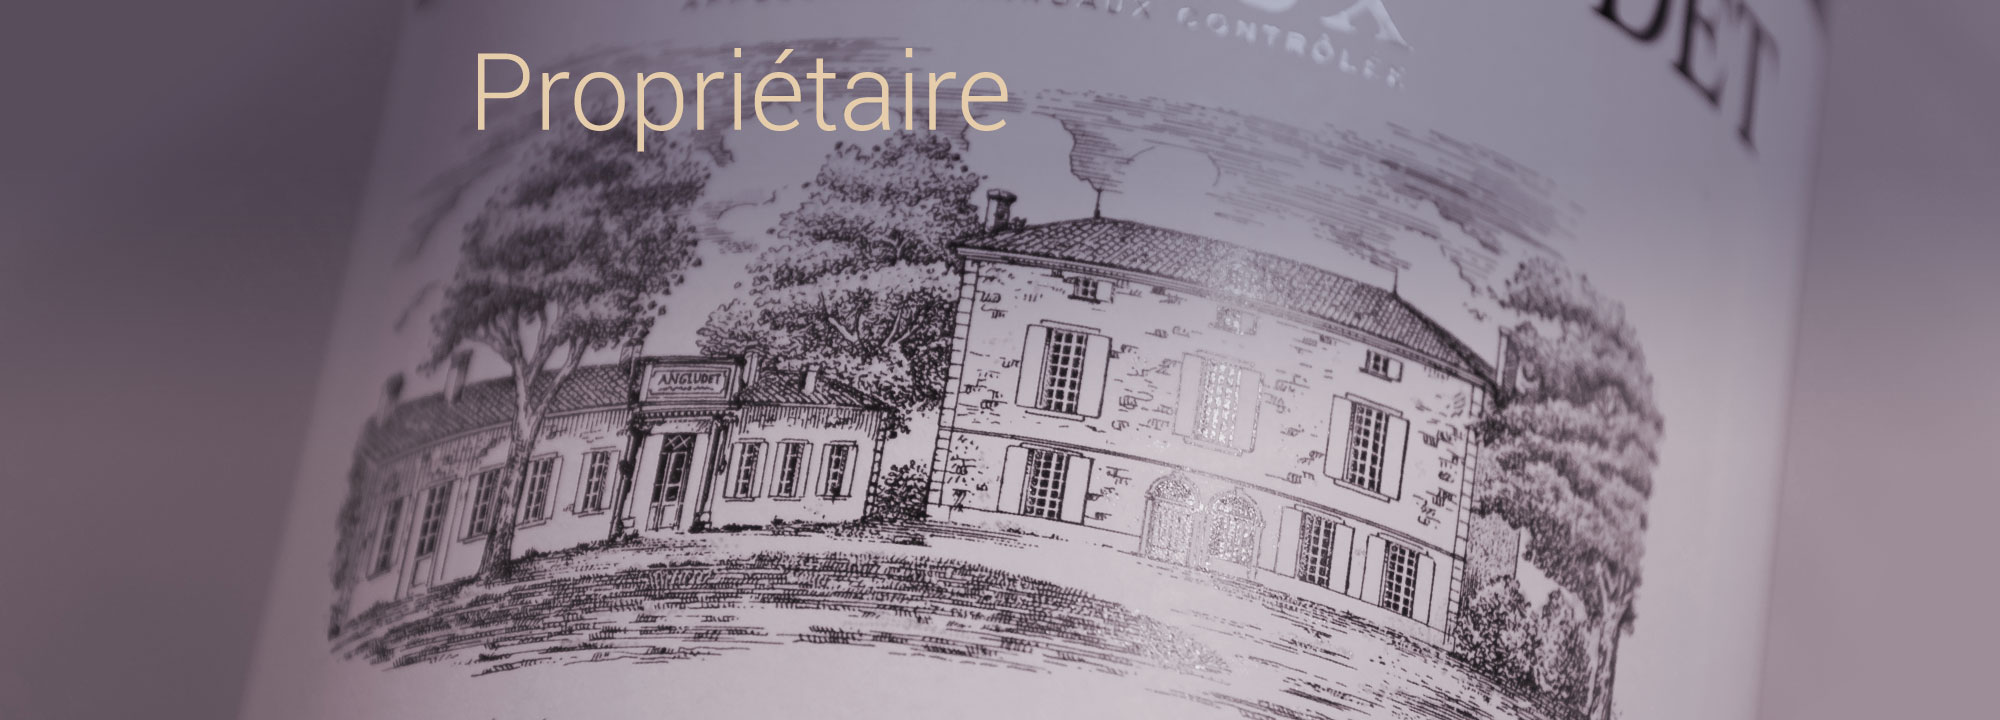 grands vins de bordeaux liste